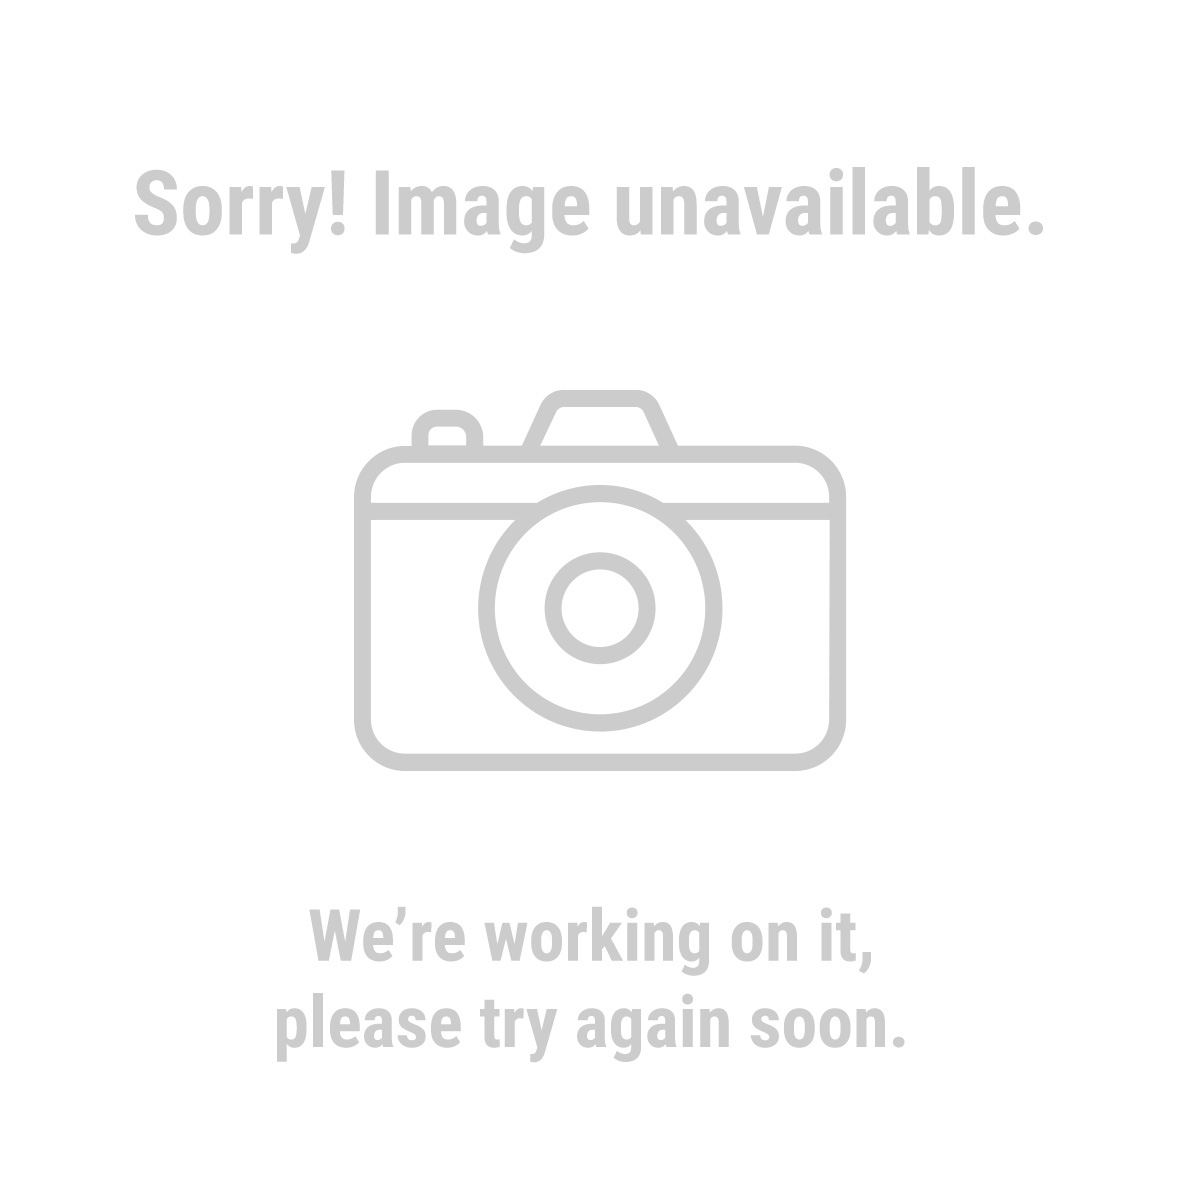 Central Pneumatic 92841 Household Low Volume, Low Pressure Spray Gun